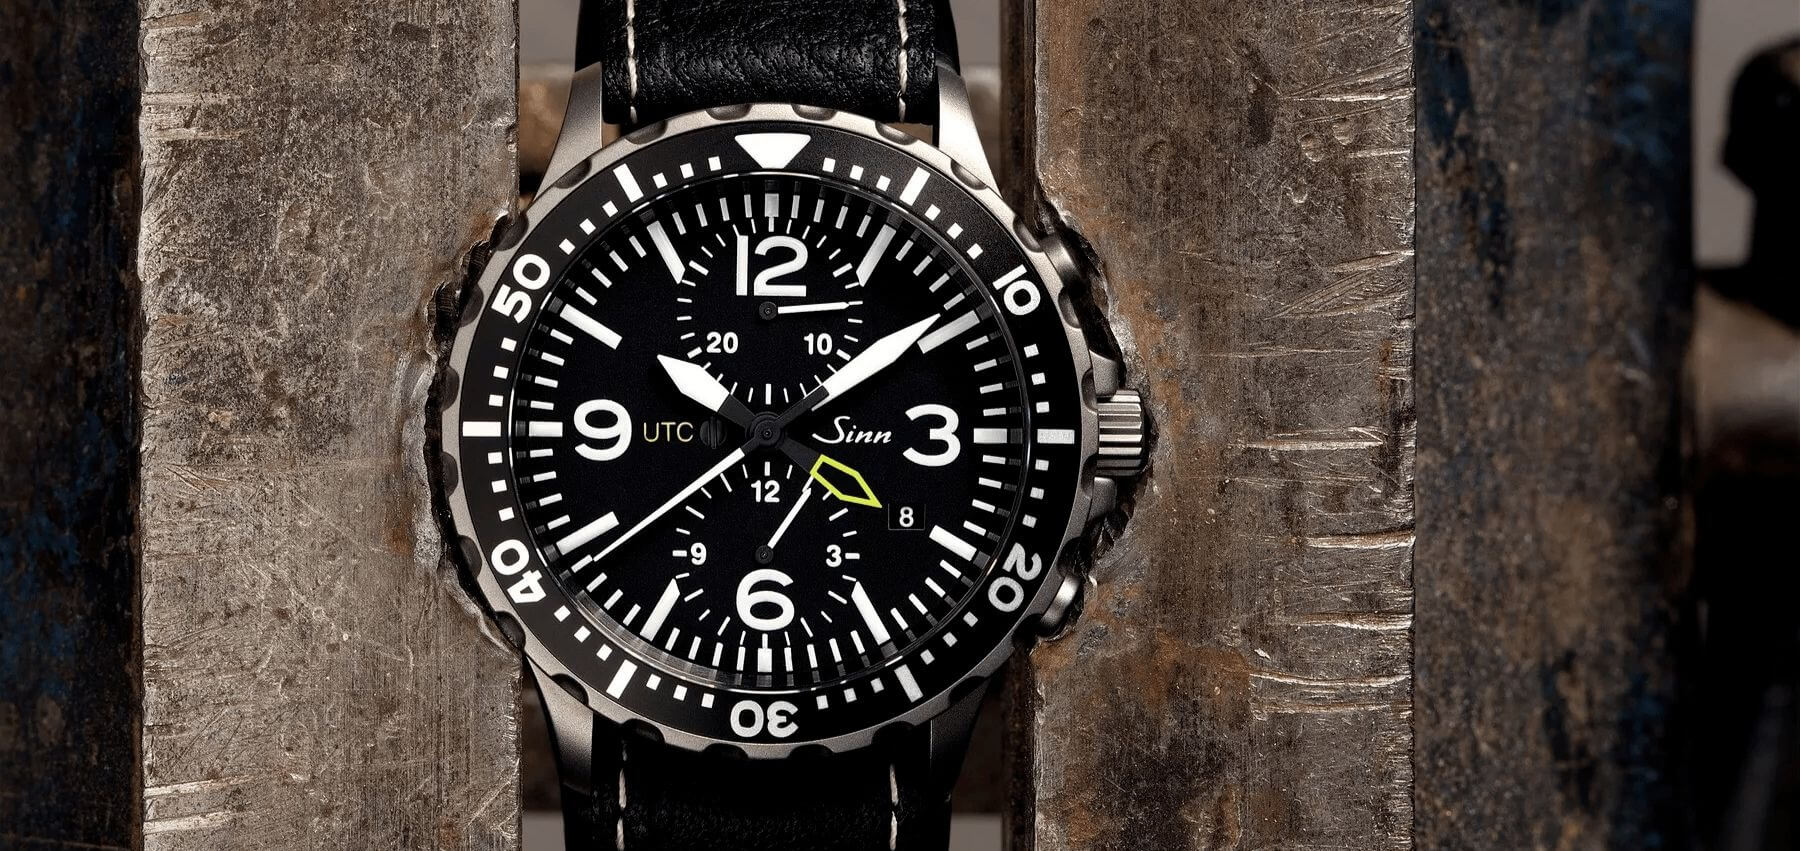 Watches that can take a beating: The world's most scratch-resistant cases